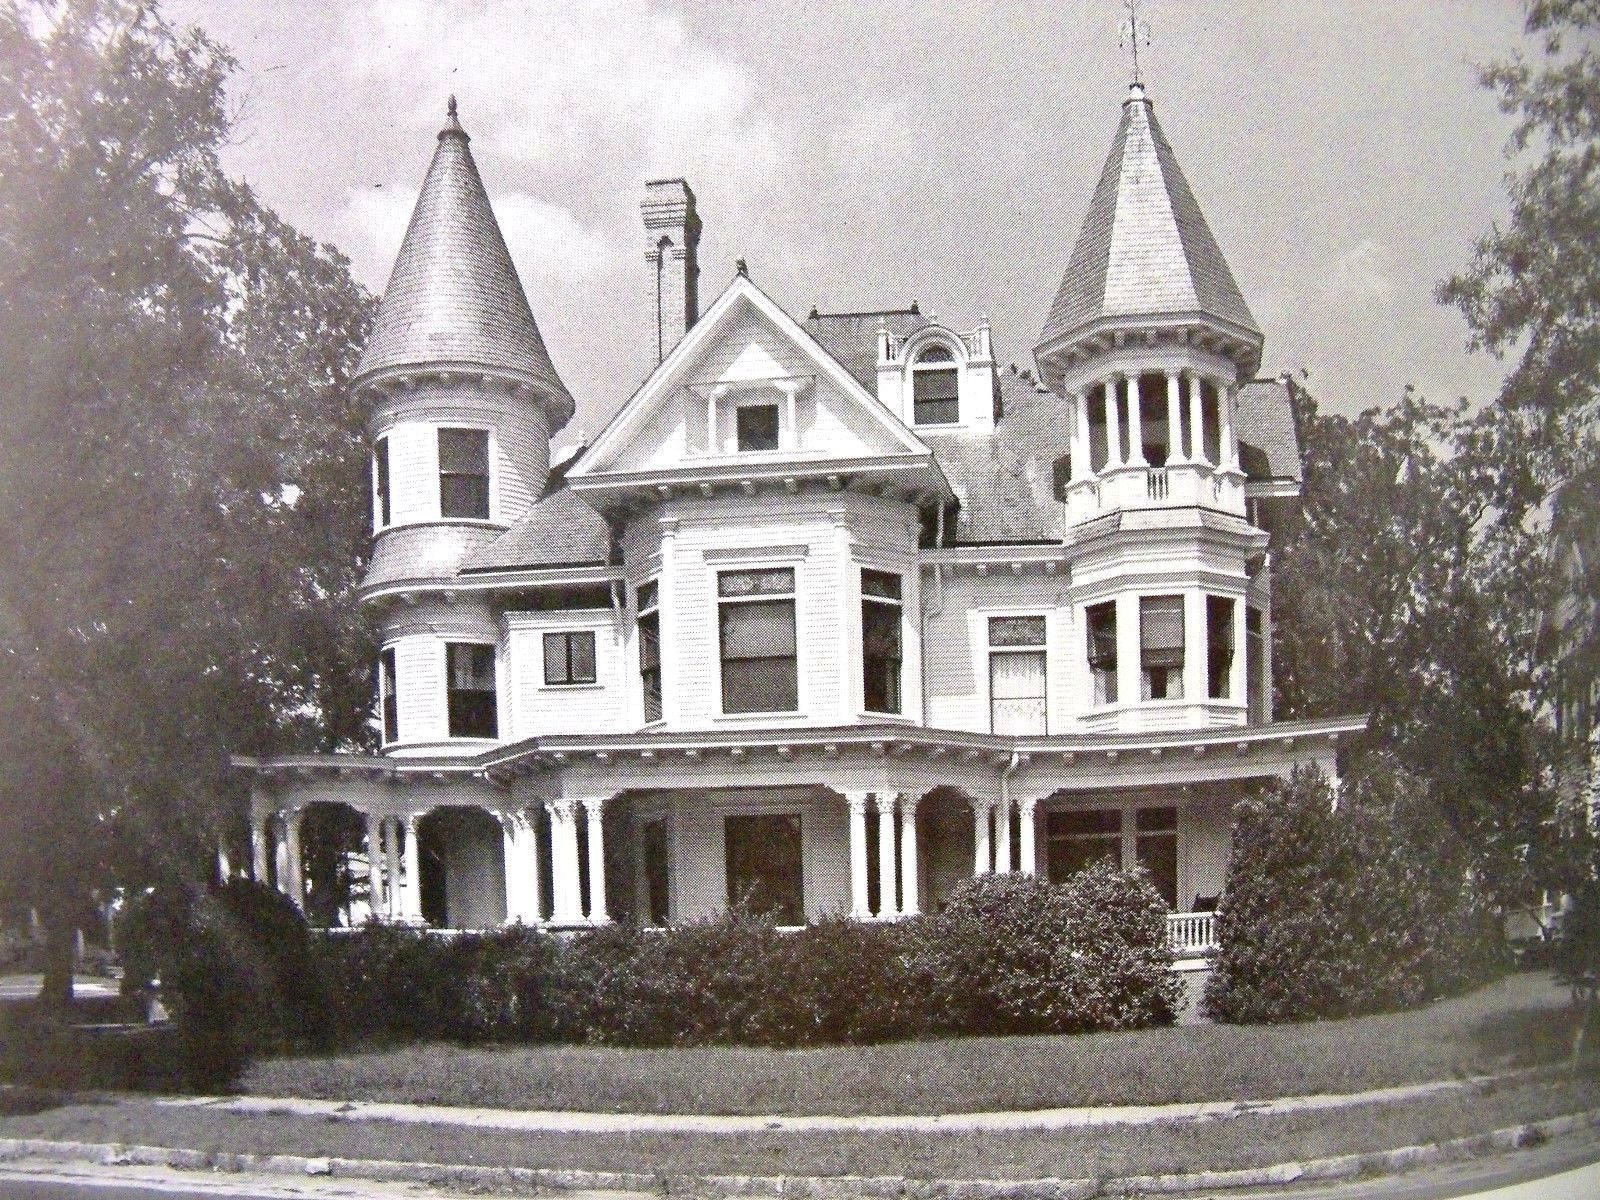 The historic architecture of New Bern and Craven County North